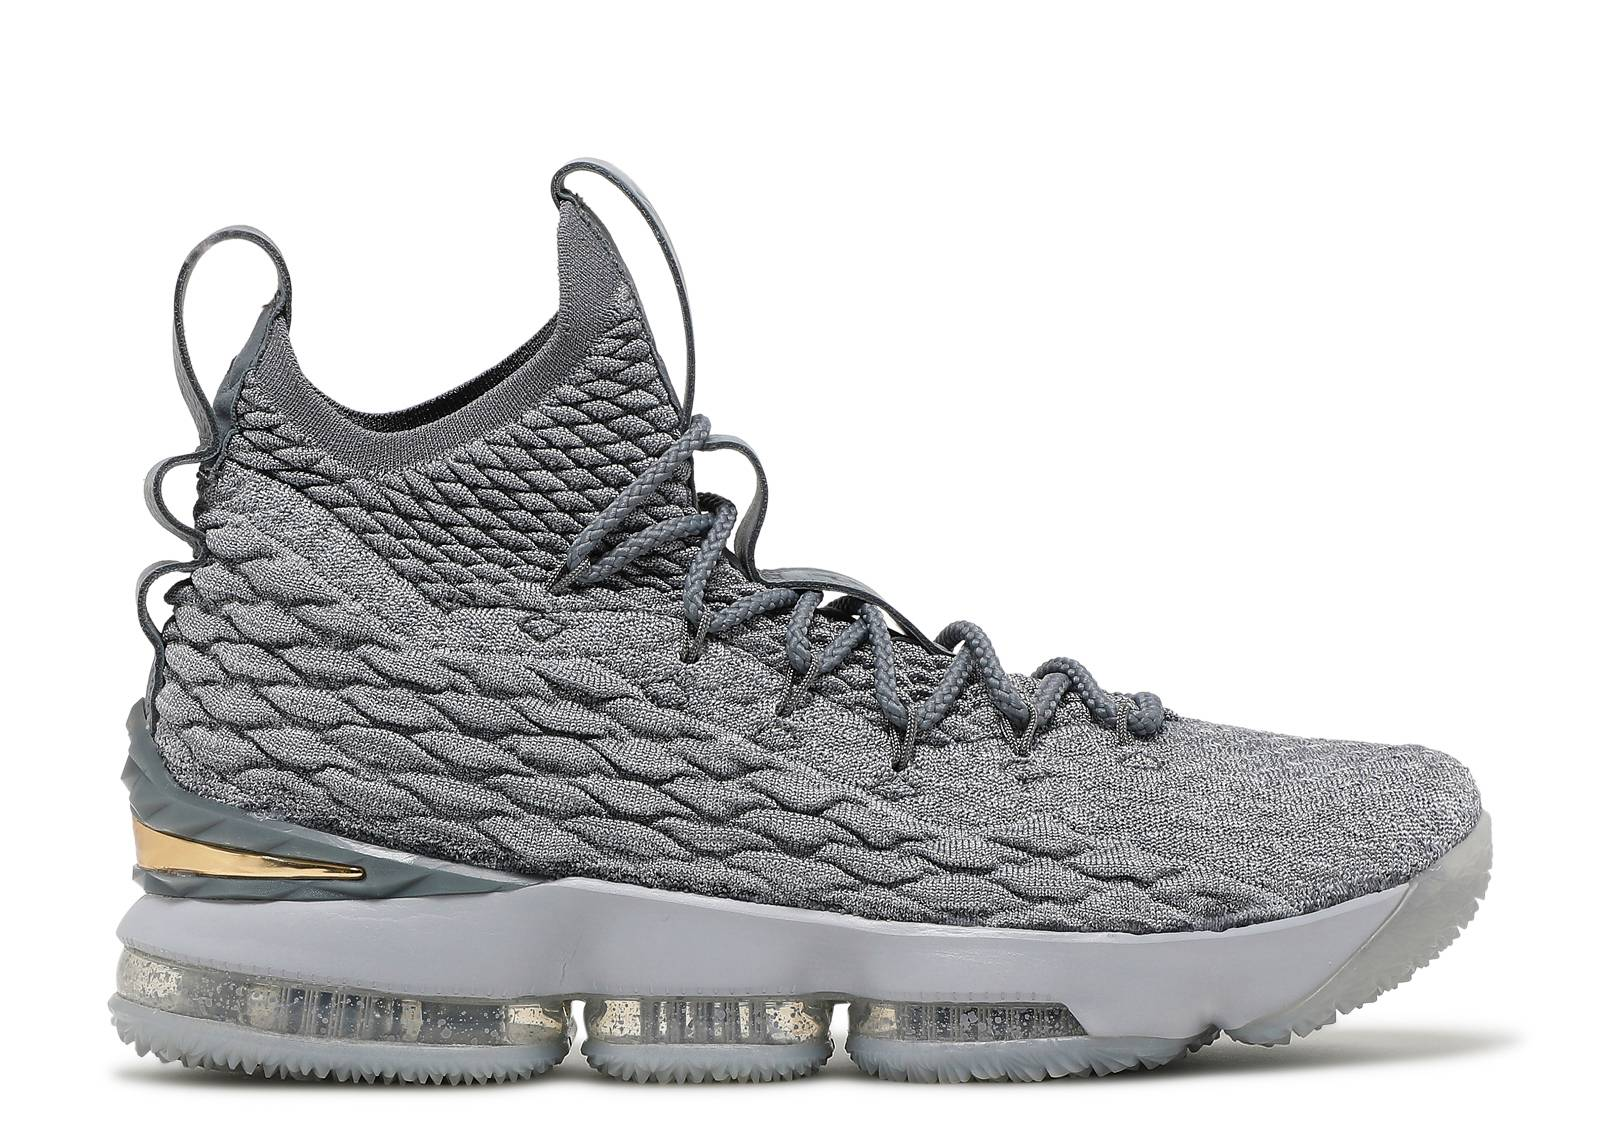 new concept d9c00 79c46 Lebron 15 - Nike - 897648 005 - wolf grey metallic gold   Flight Club